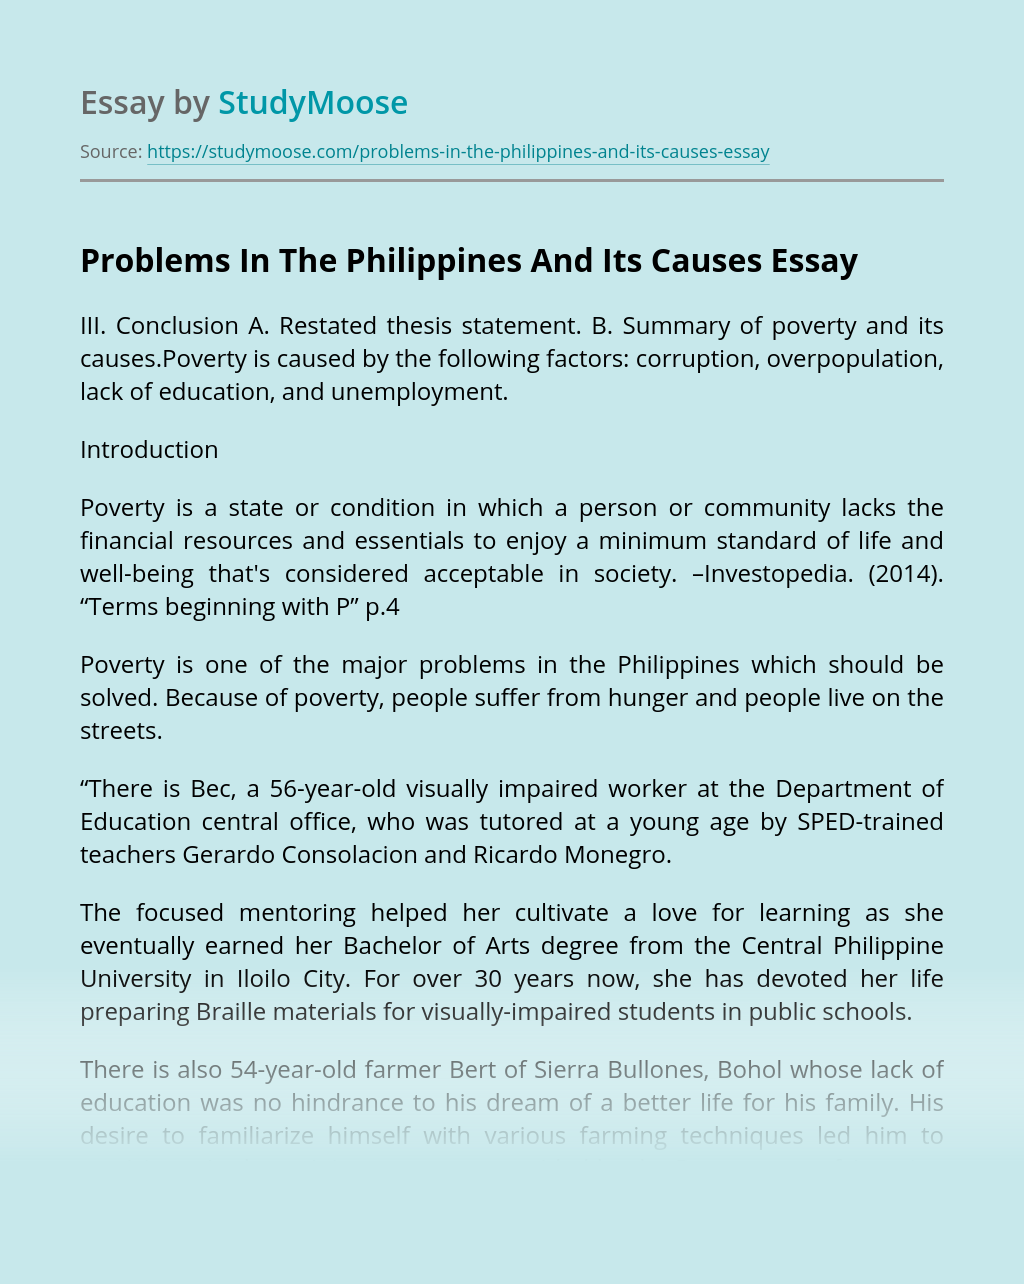 Problems In The Philippines And Its Causes